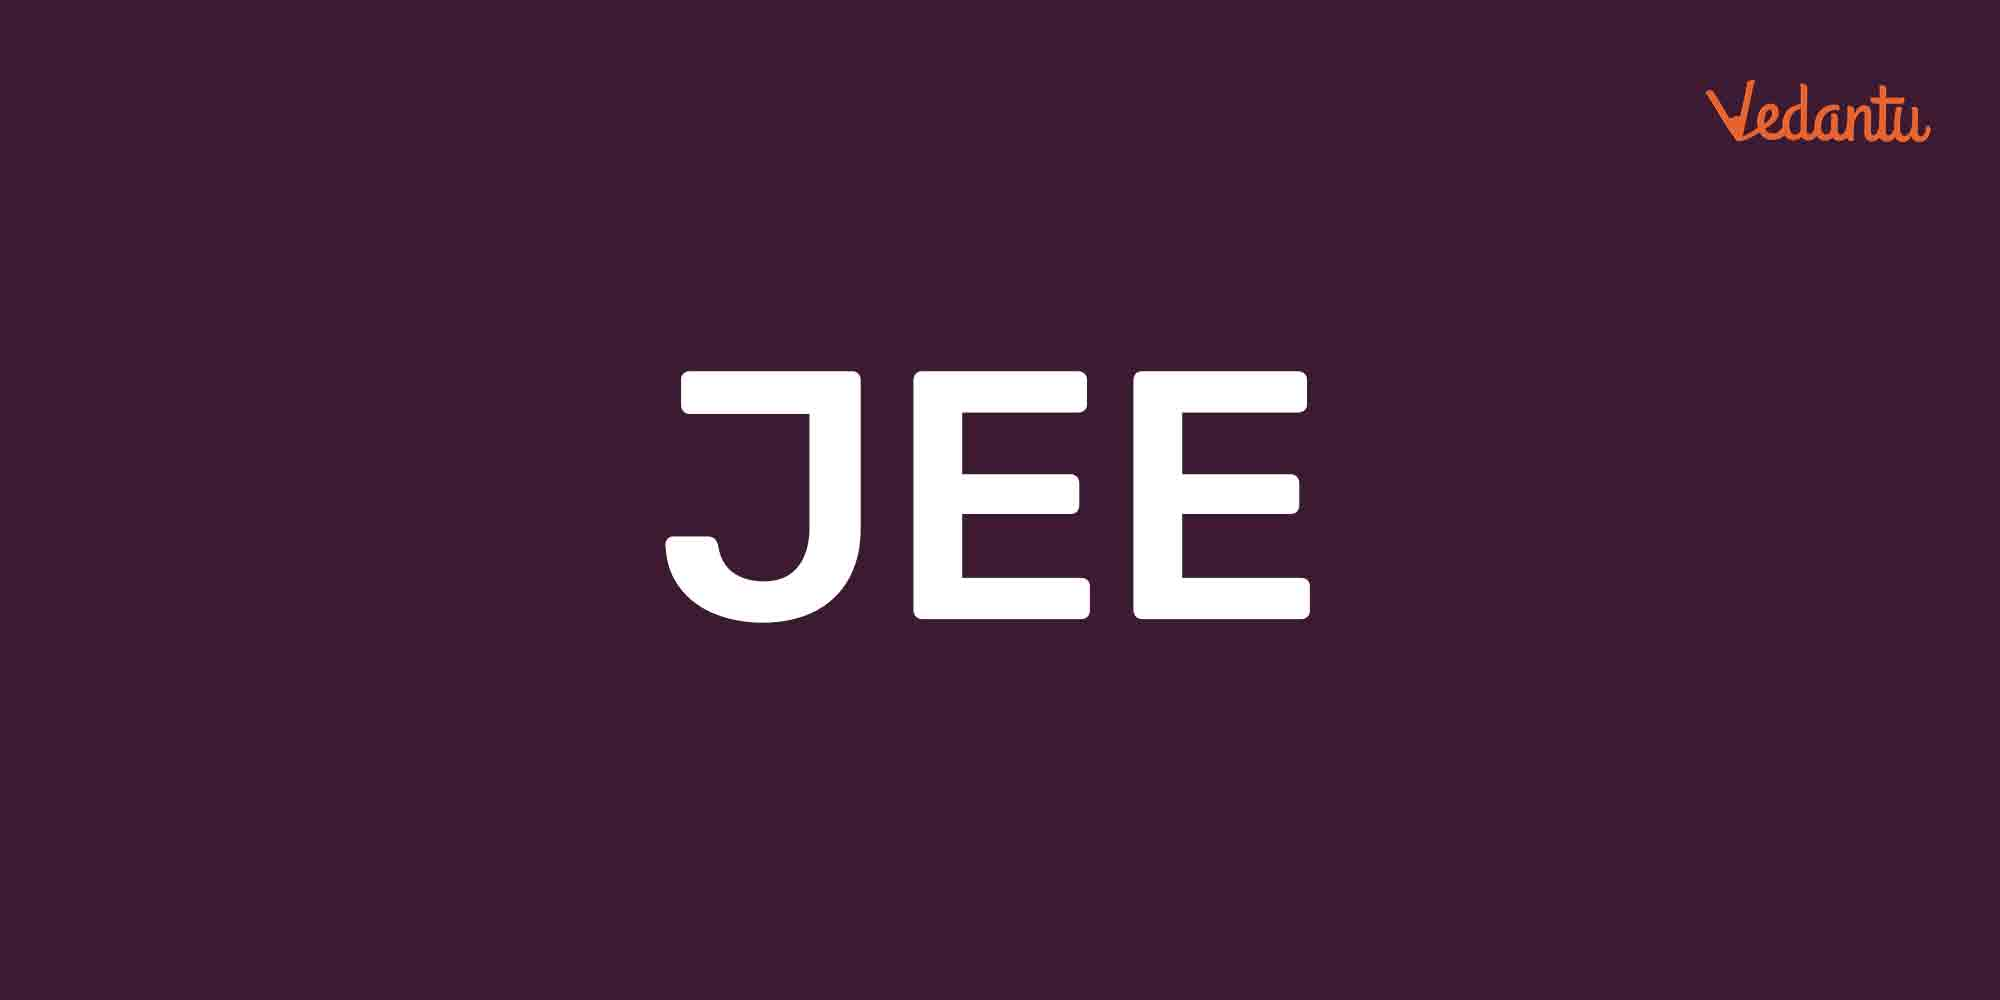 10 Things That a JEE Aspirant Should Not Do During the JEE Preparation